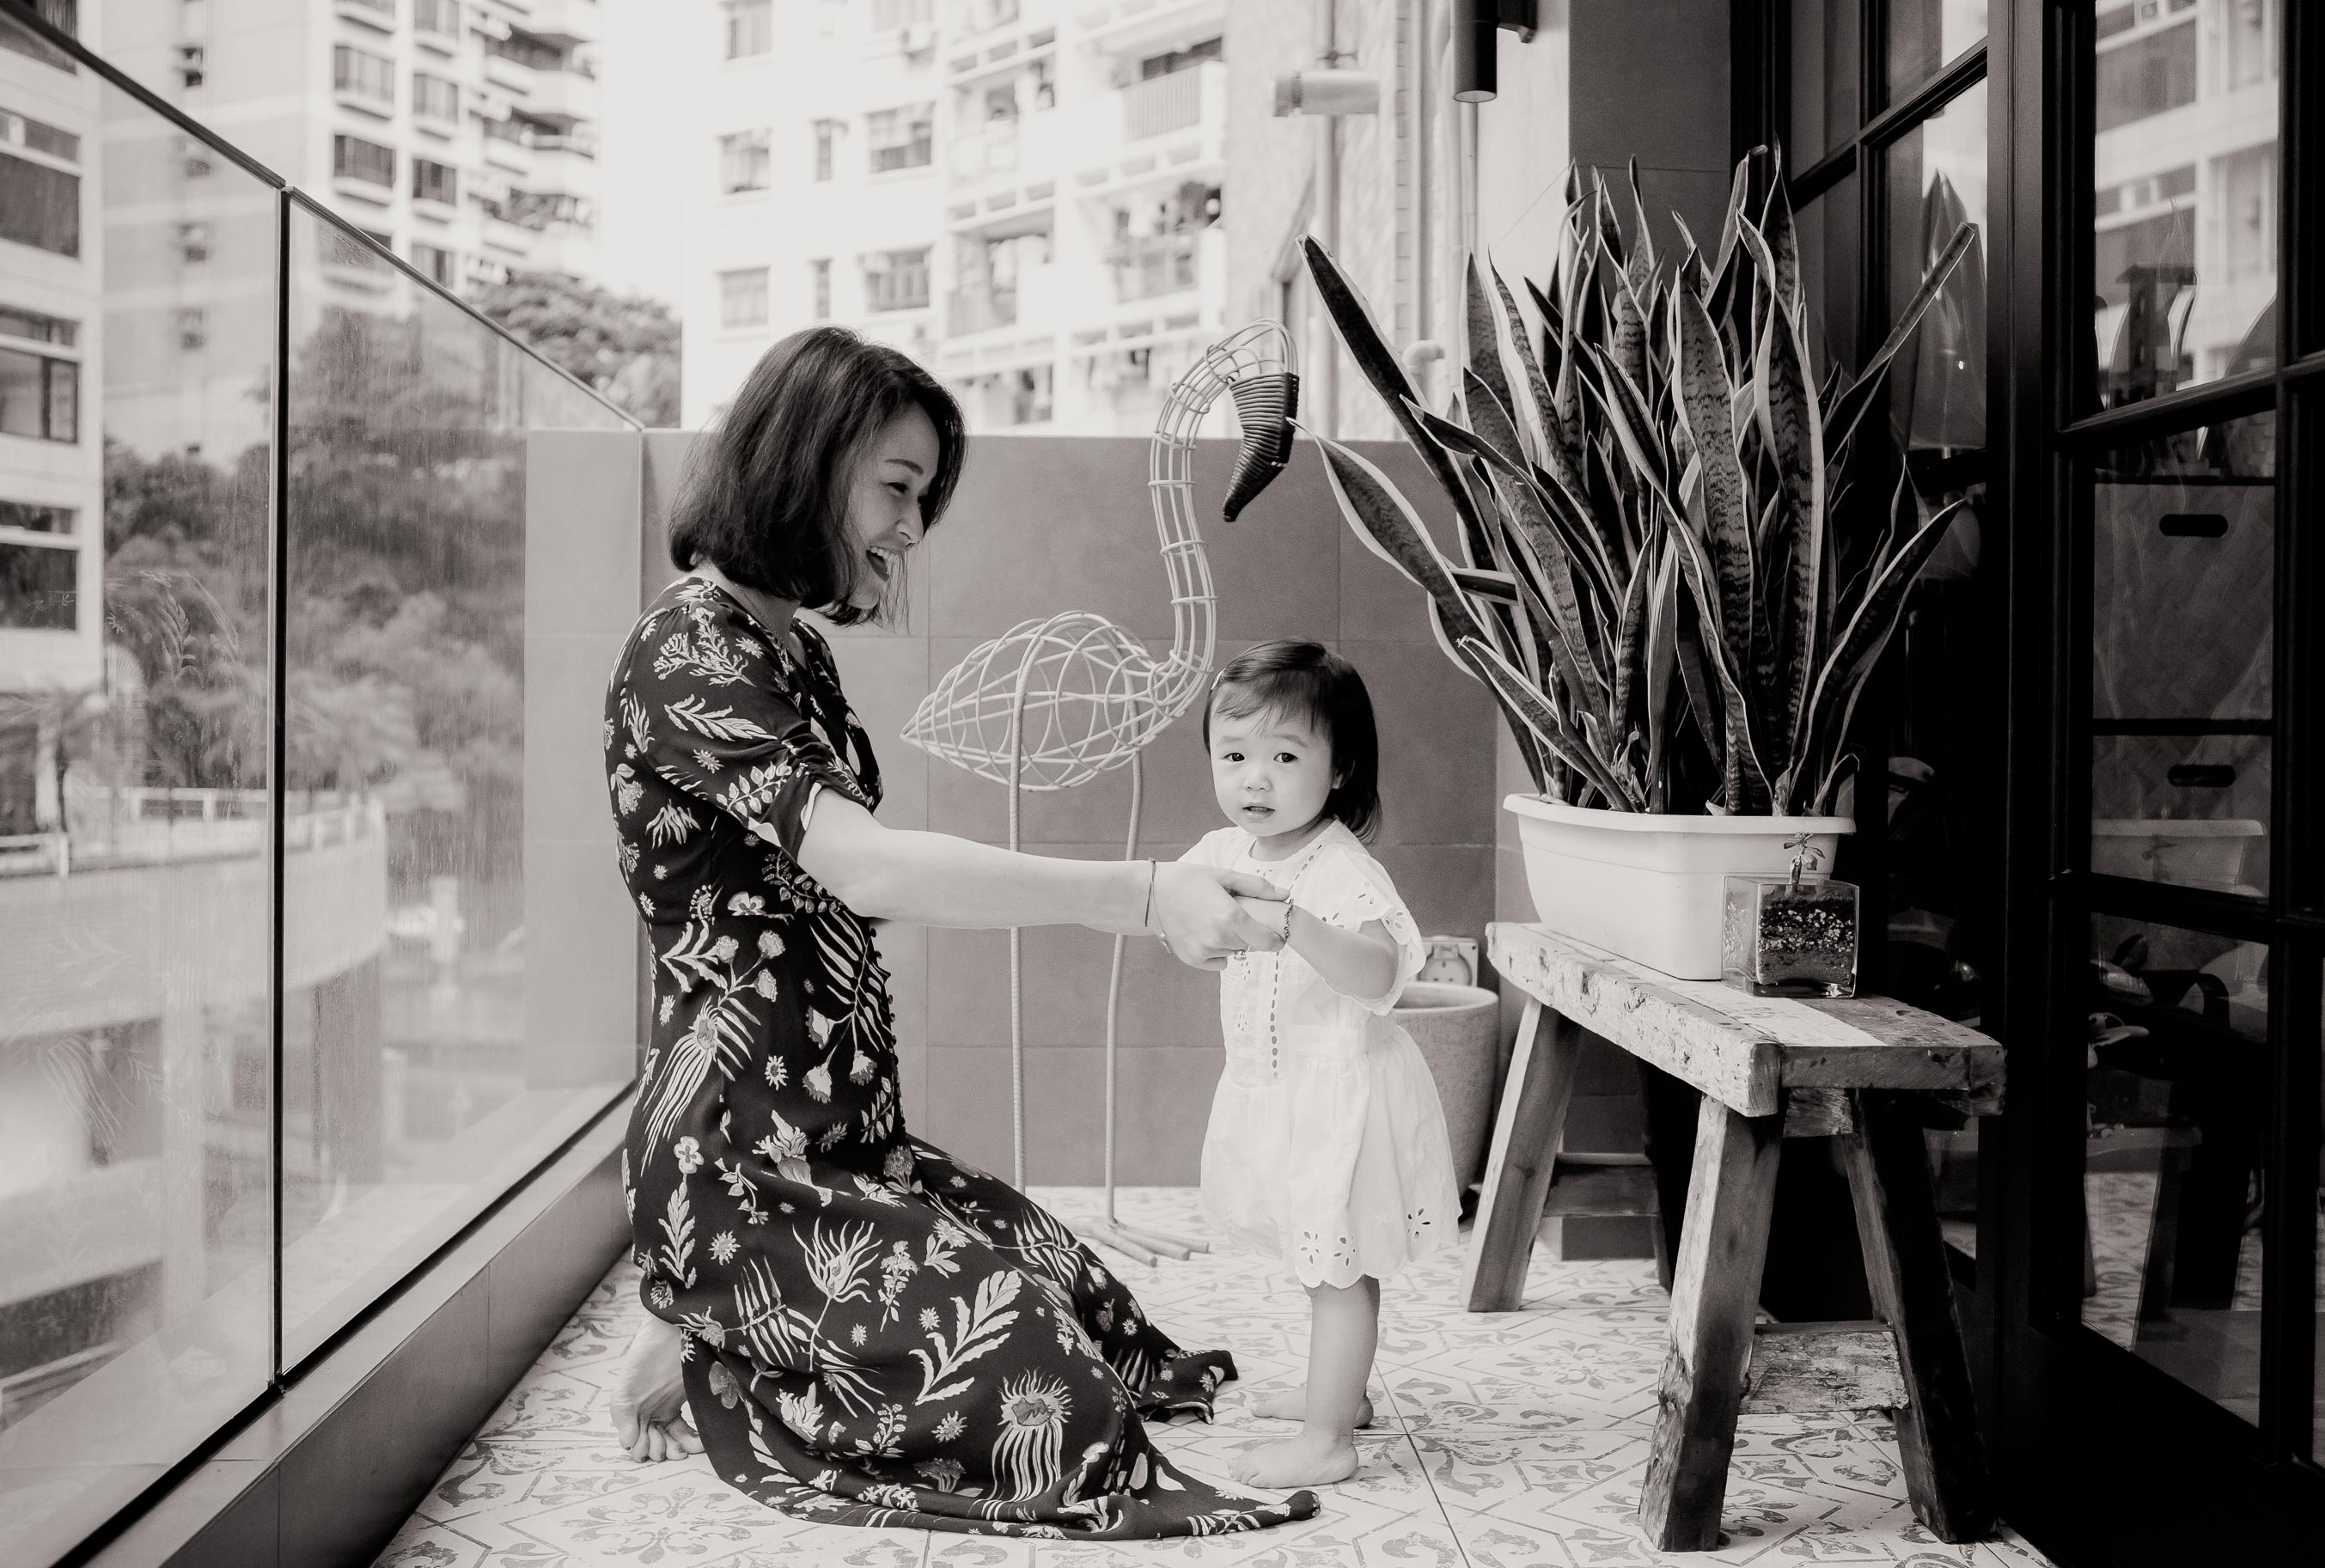 Joleen Soo merges motherhood, charity-work and style with inspiring results